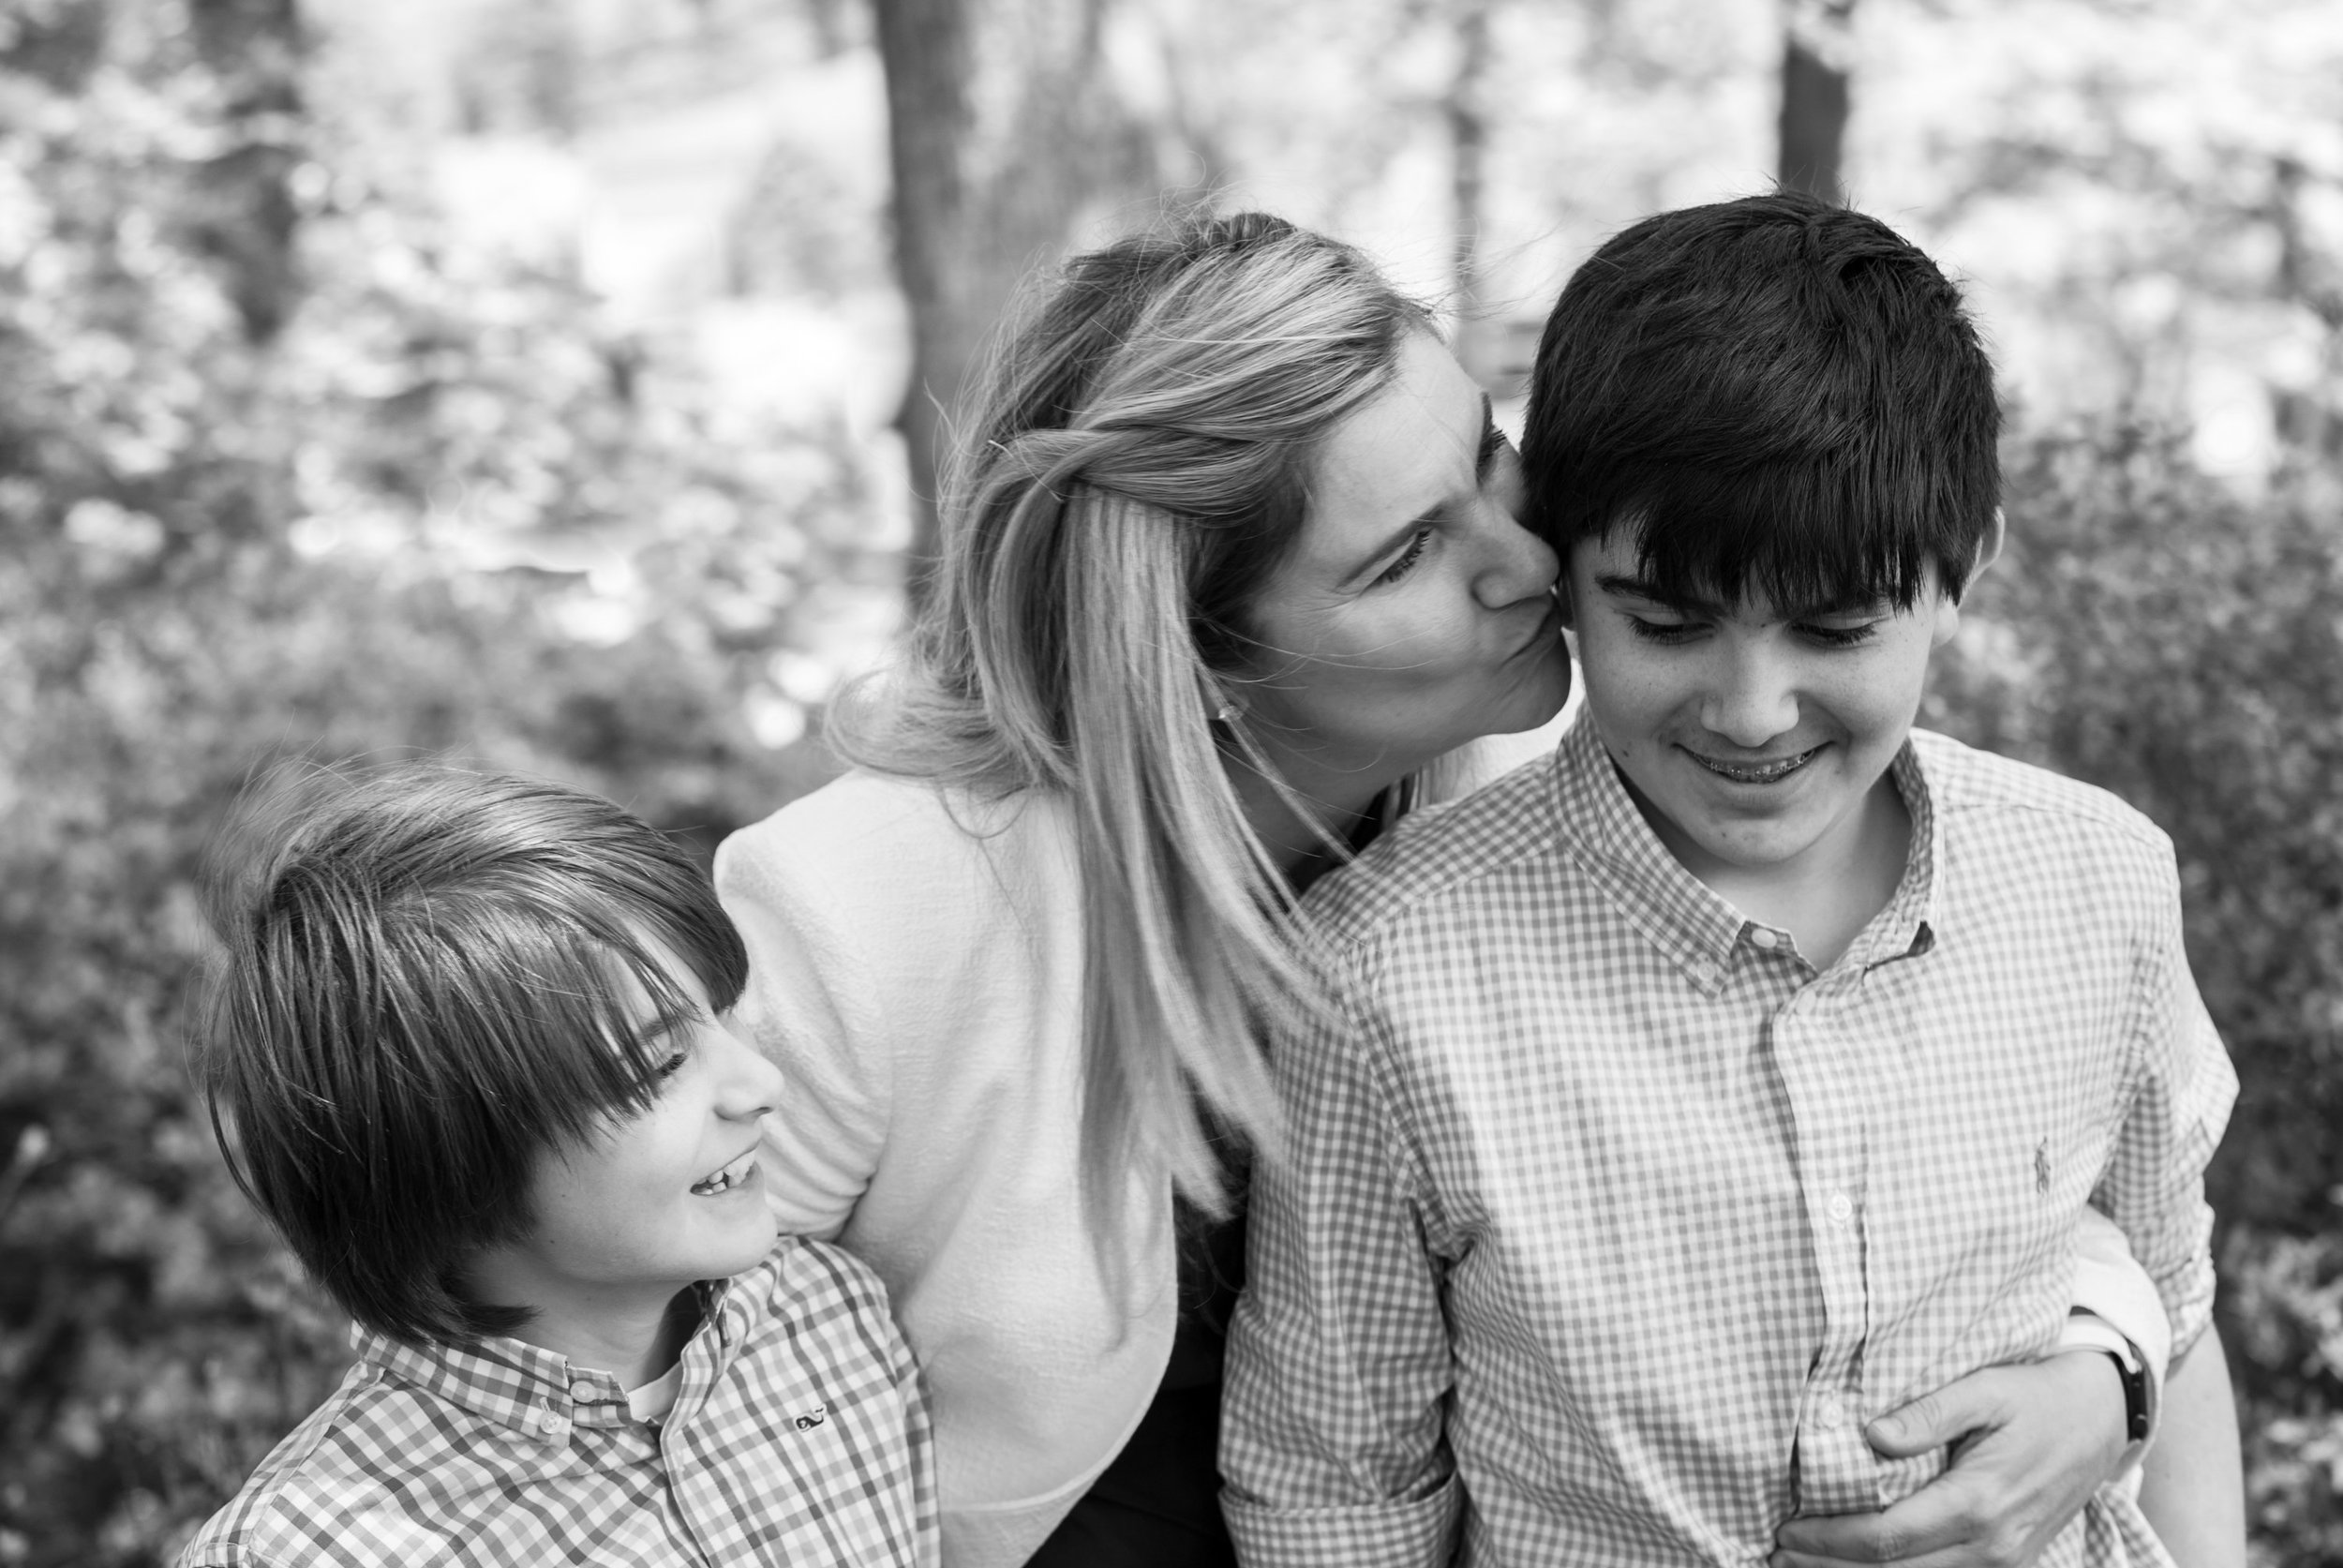 Maryland Family Photography by Megapixels Media